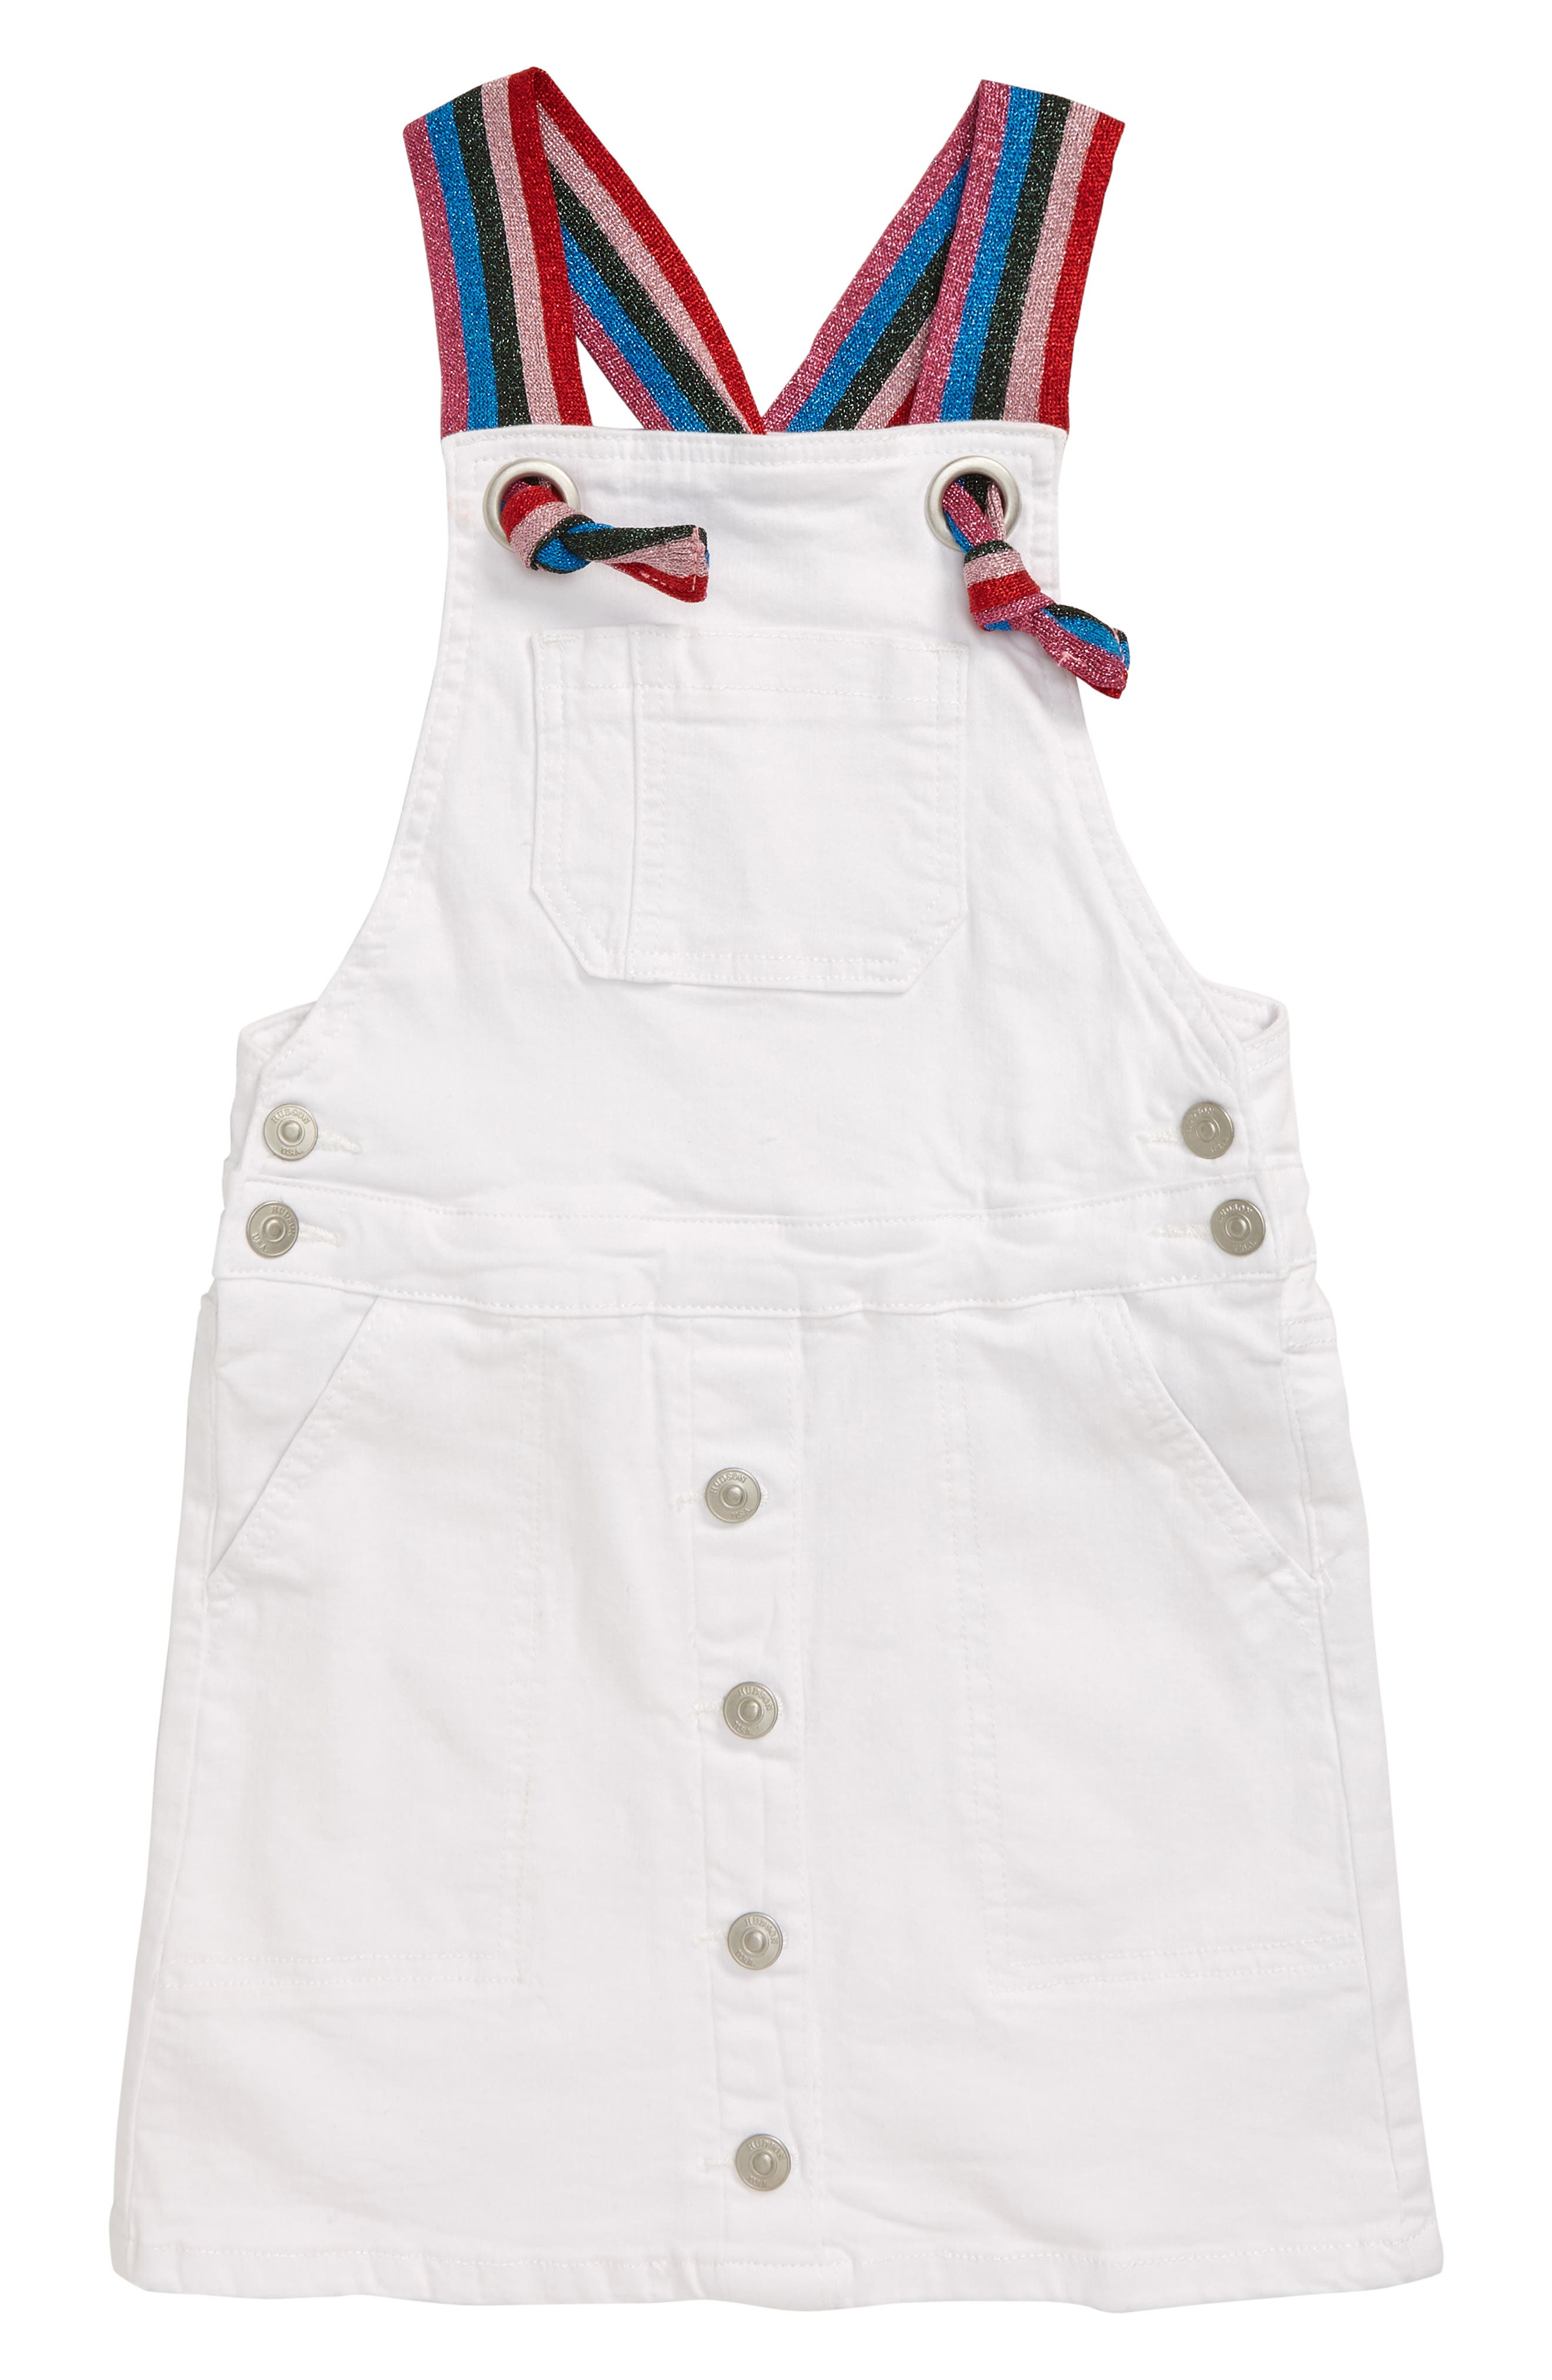 Toddler Girls Hudson Jeans Donna Pinafore Dress Size 4T  White